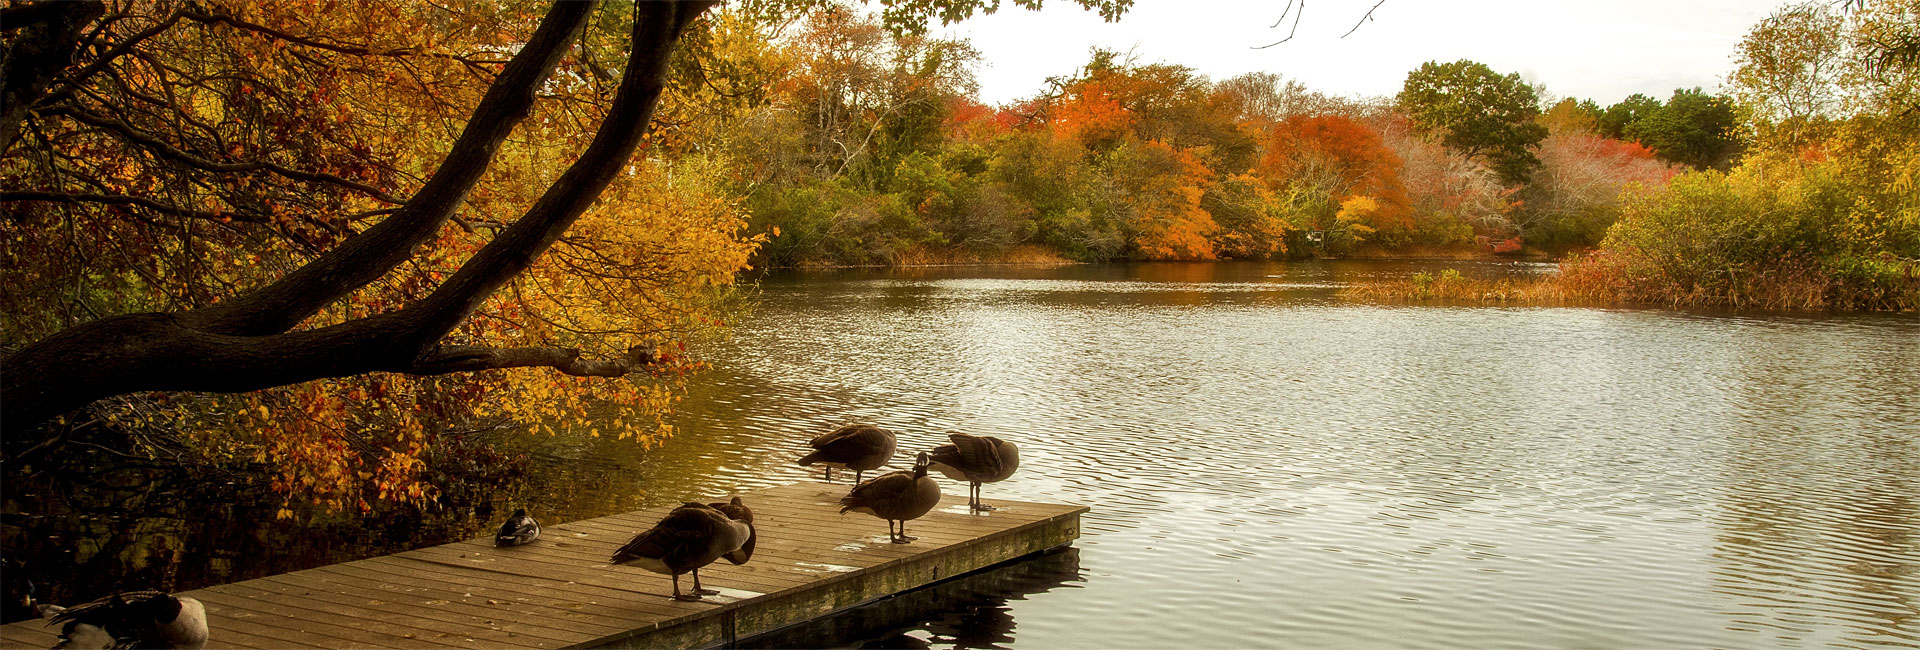 Geese on the dock at the ice pond with autumn colors